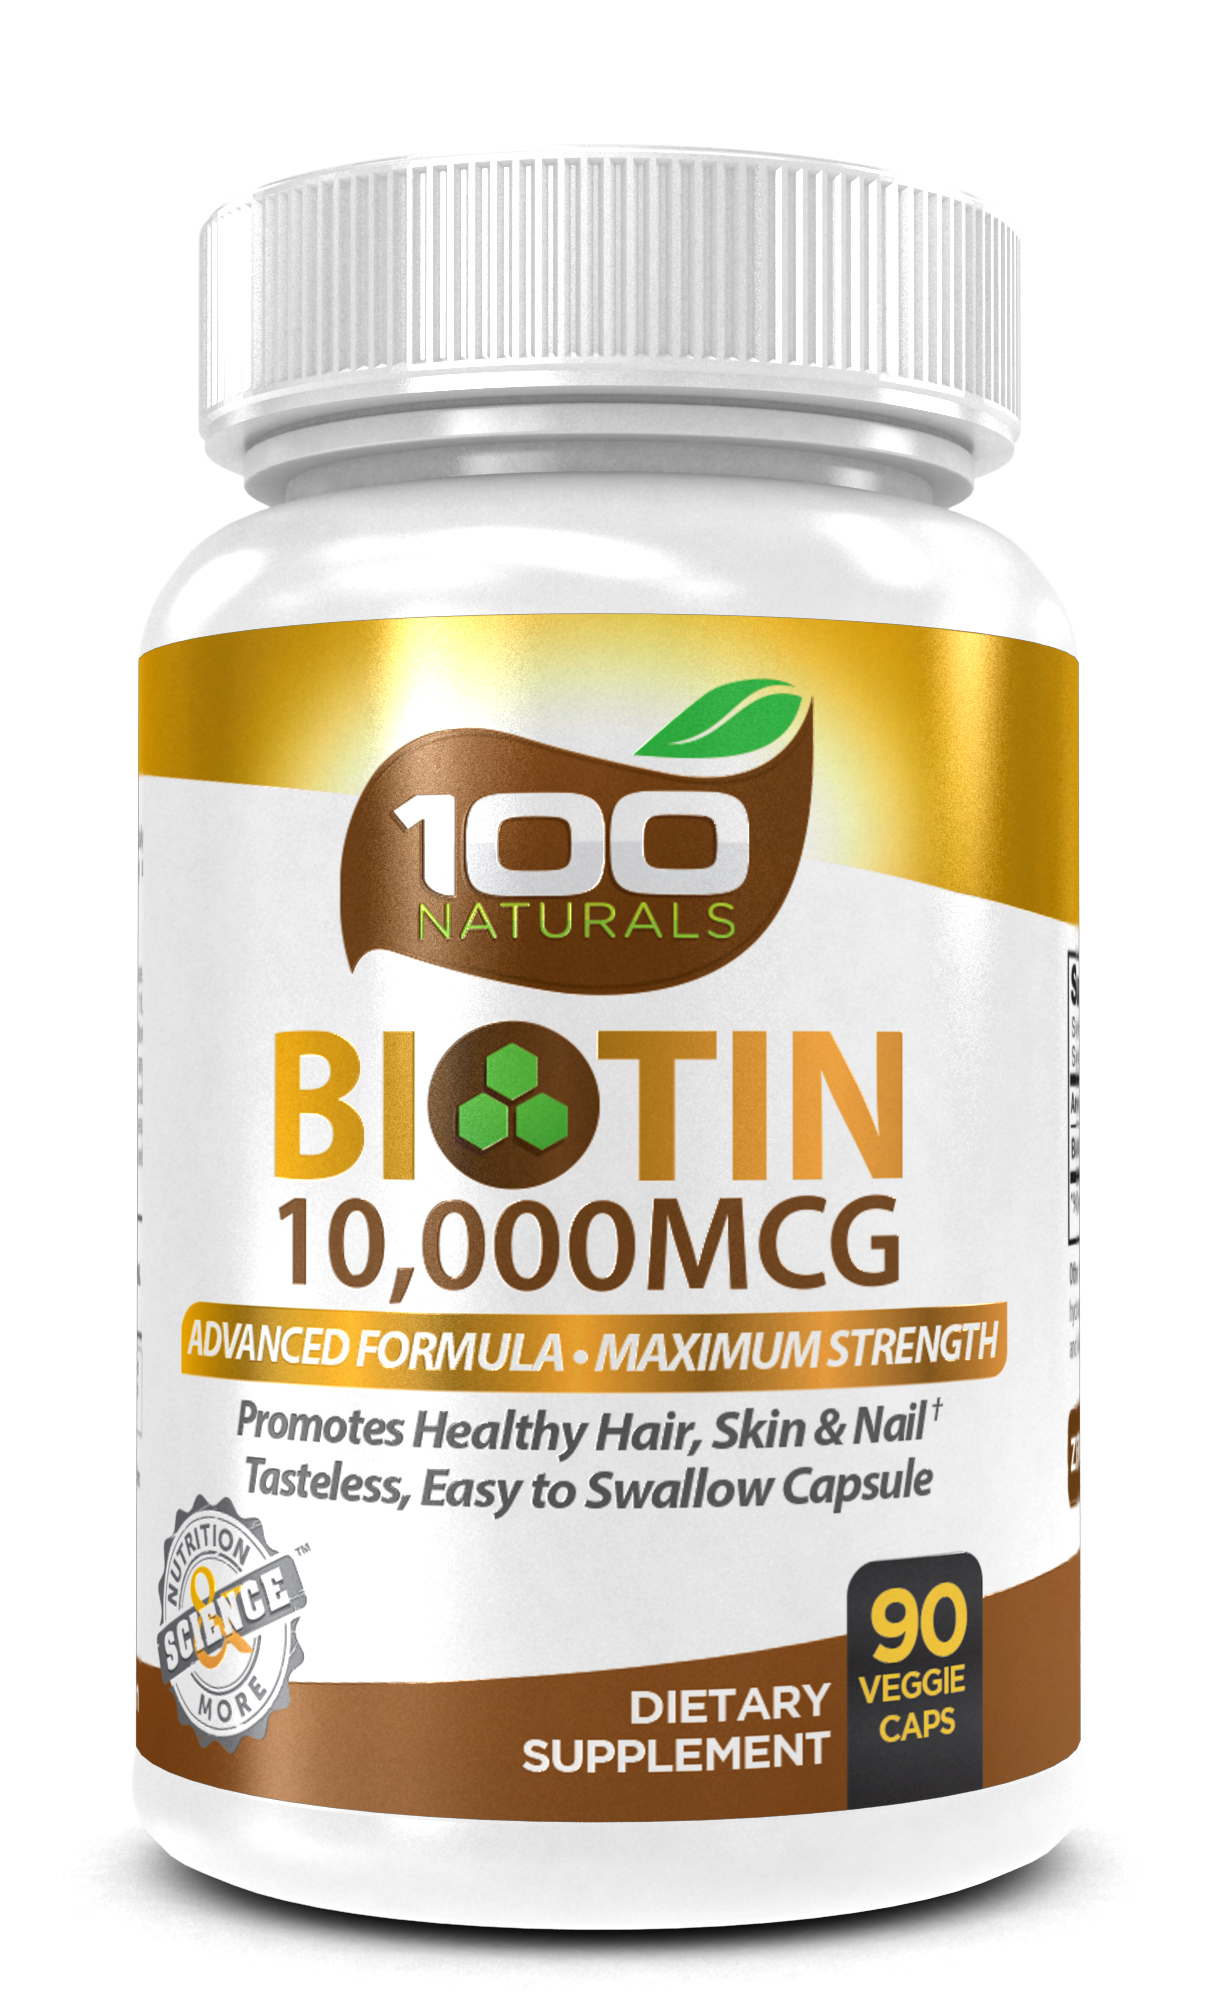 Maximum Strength #Biotin for Hair, Skin, and Nails from 100 Naturals